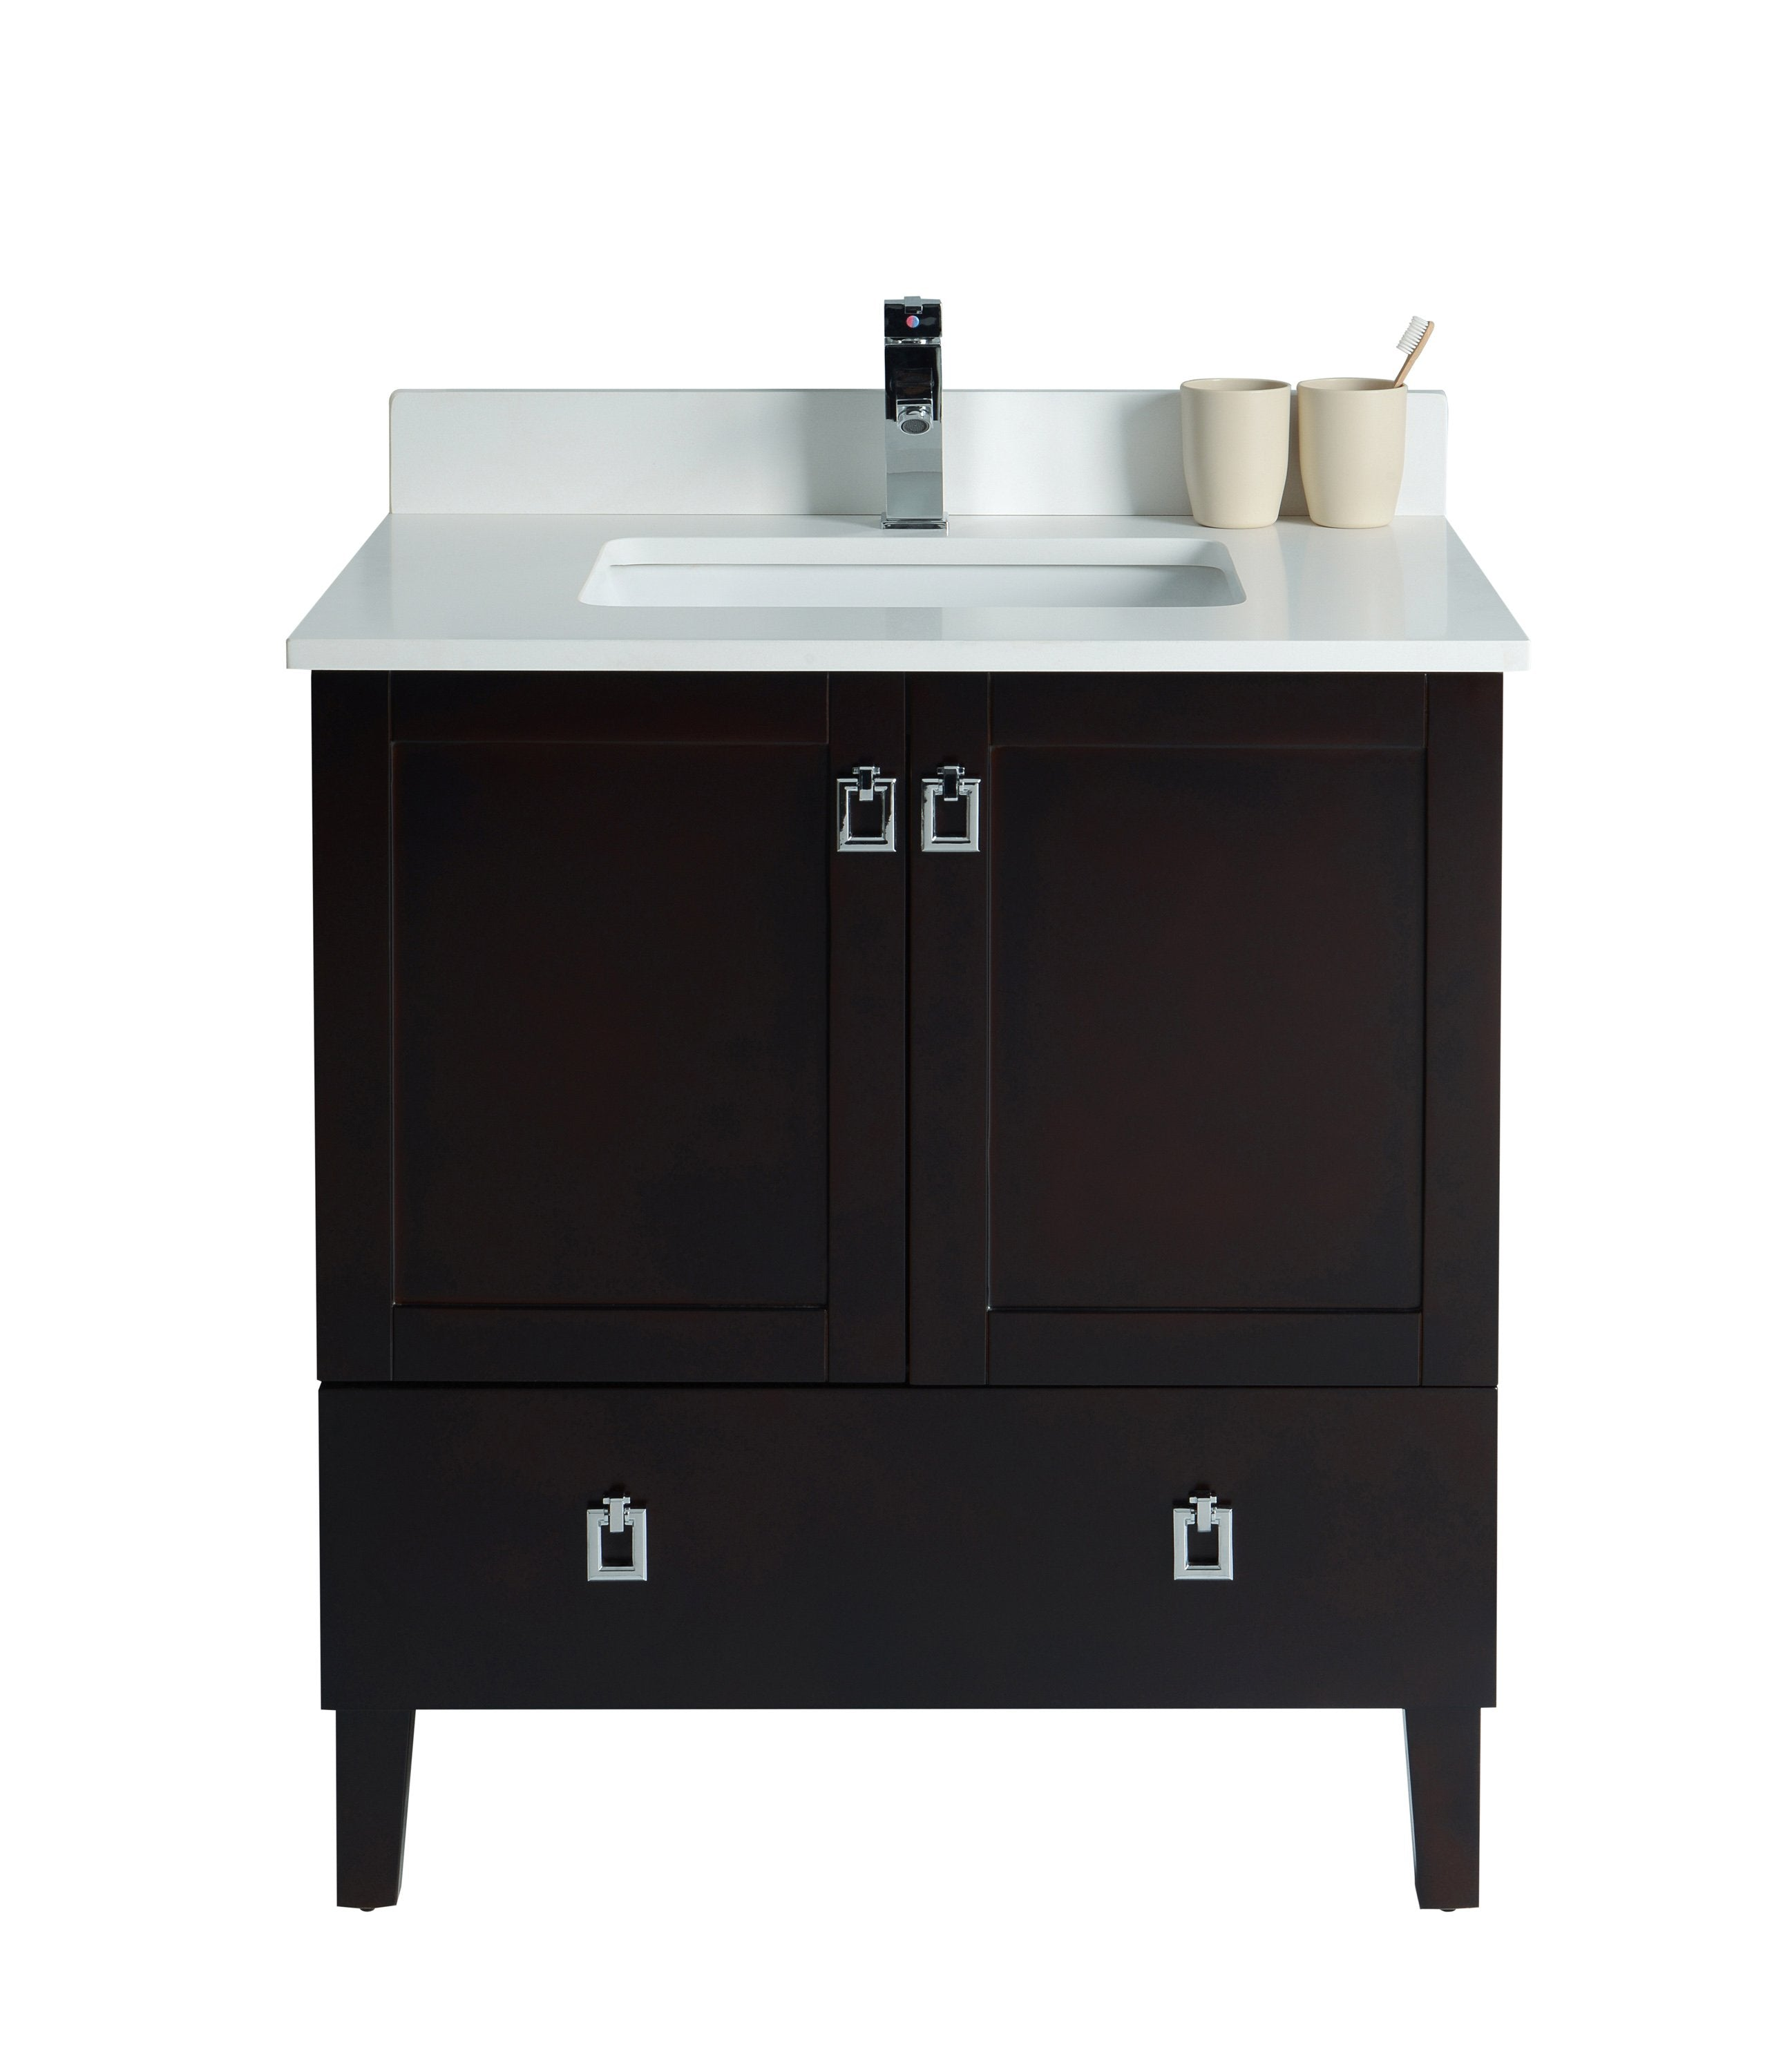 laminate over of drawers inch sink glass and the freestanding wood single solid option floor vanities full grey right with mosaic rug ideas get bathroom vanity